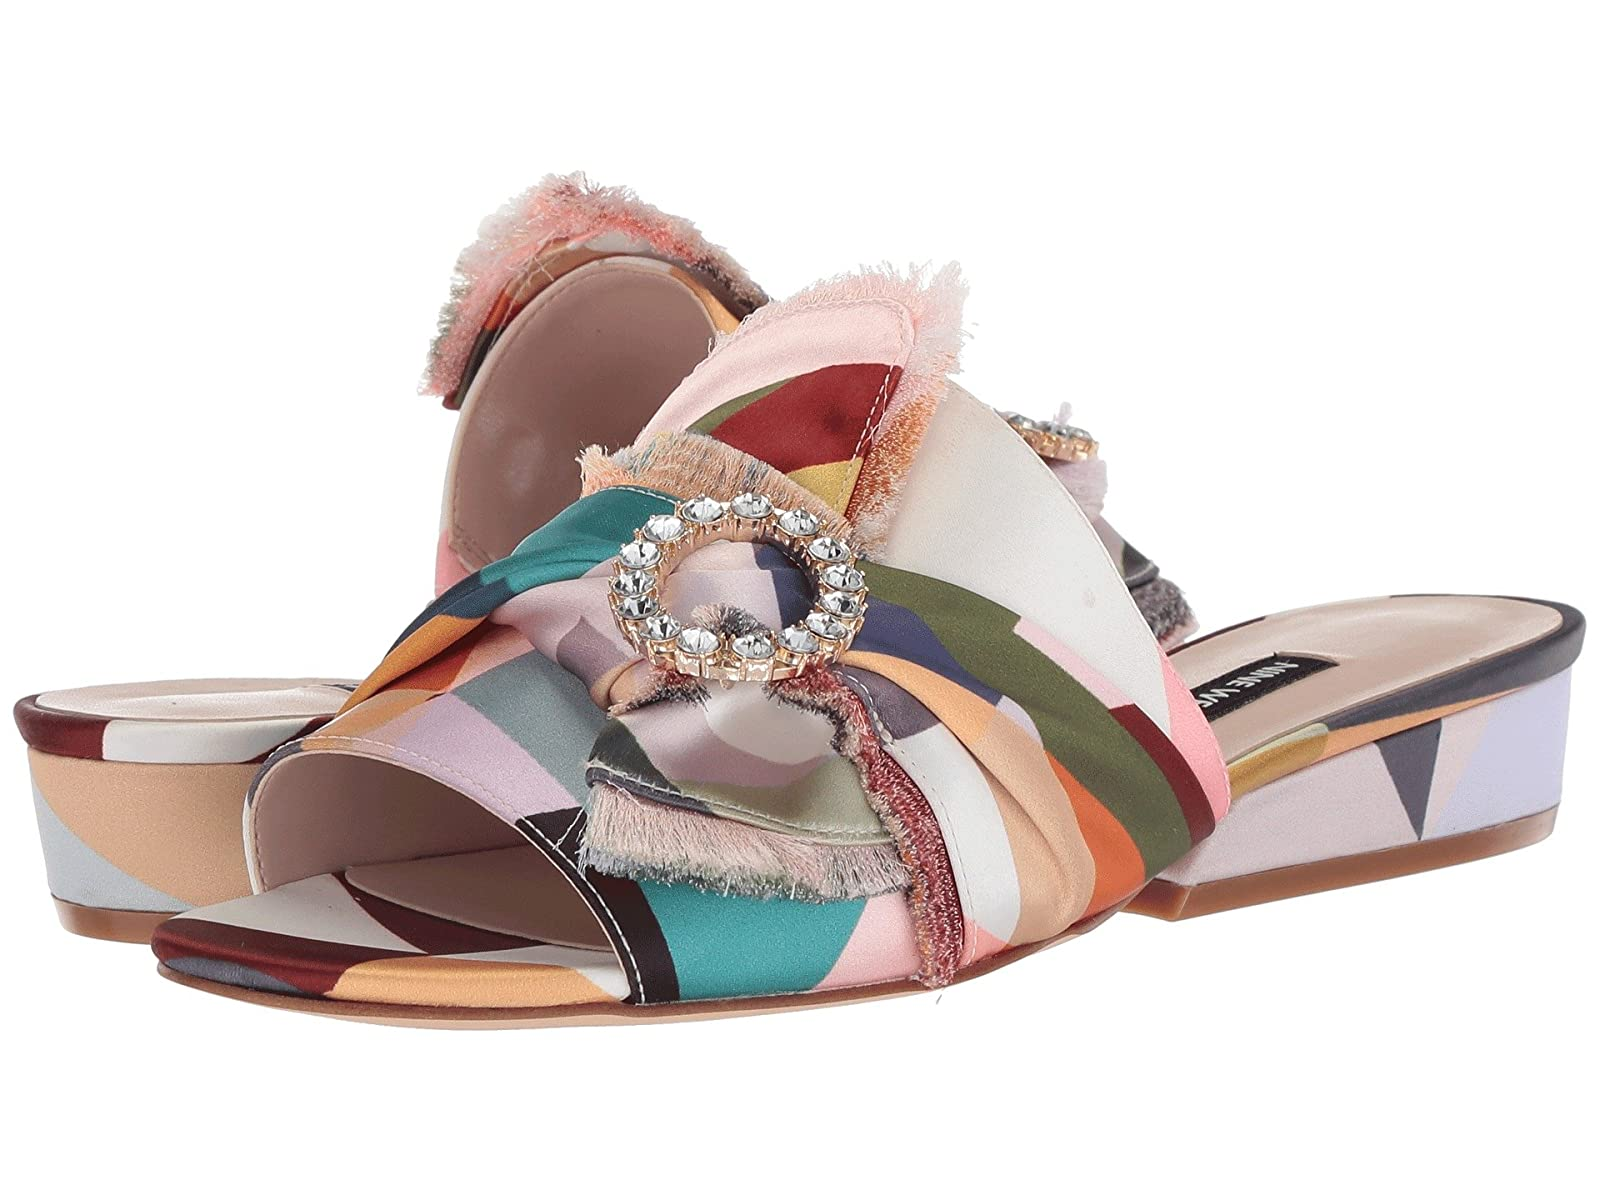 Nine West LafayCheap and distinctive eye-catching shoes